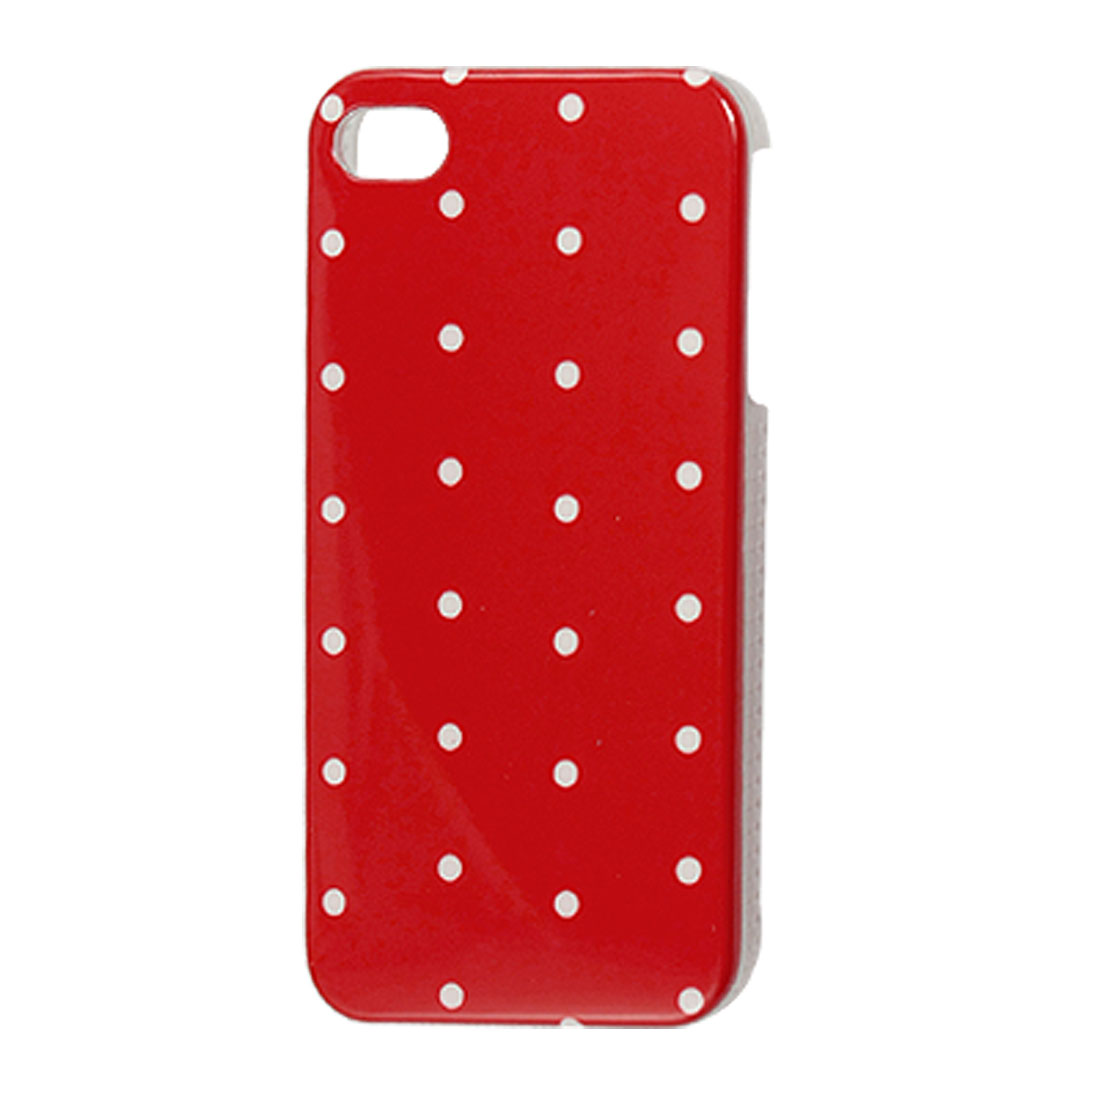 White Dot Pattern IMD Back Case Shell Red for iPhone 4 4G 4S